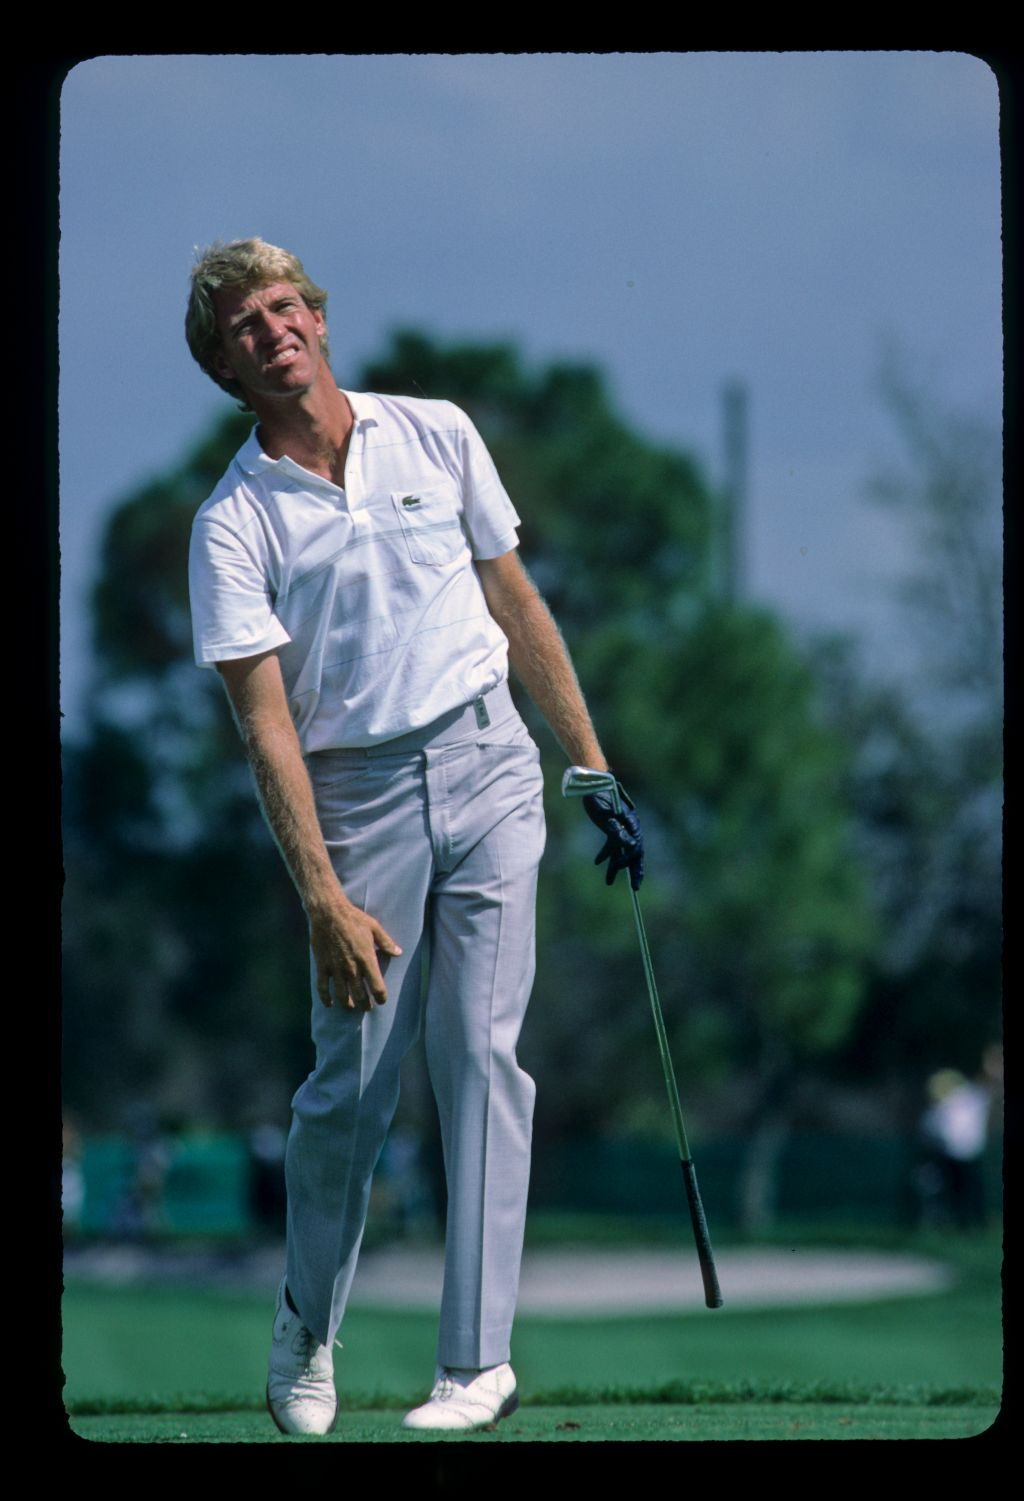 American golfer Vance Heafner following his tee shot anxiously at the 1985 Hertz Bay Hill Classic